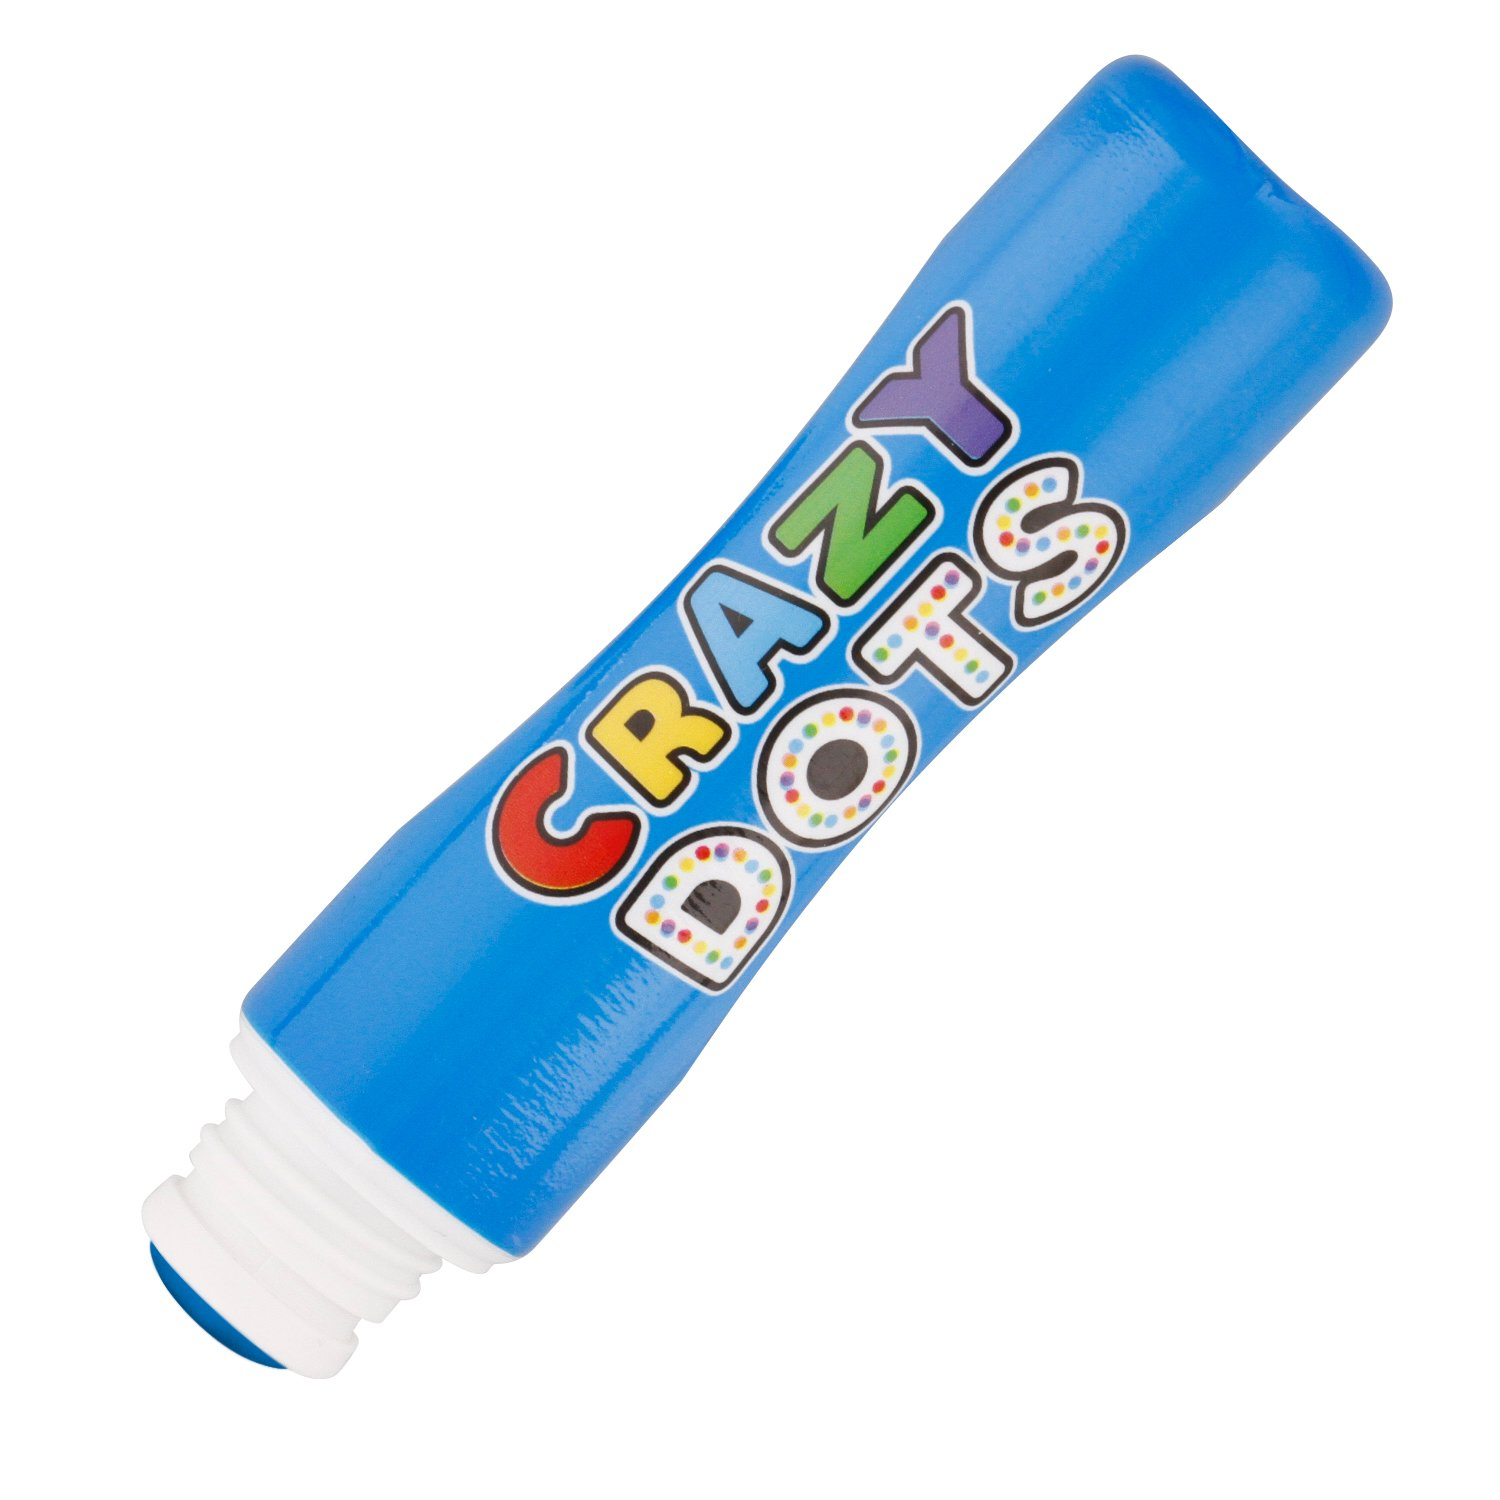 U.S. Art Supply 8 Color Crazy Dots Markers - Children's Washable Easy Grip Non-Toxic Paint Marker Daubers by US Art Supply (Image #4)